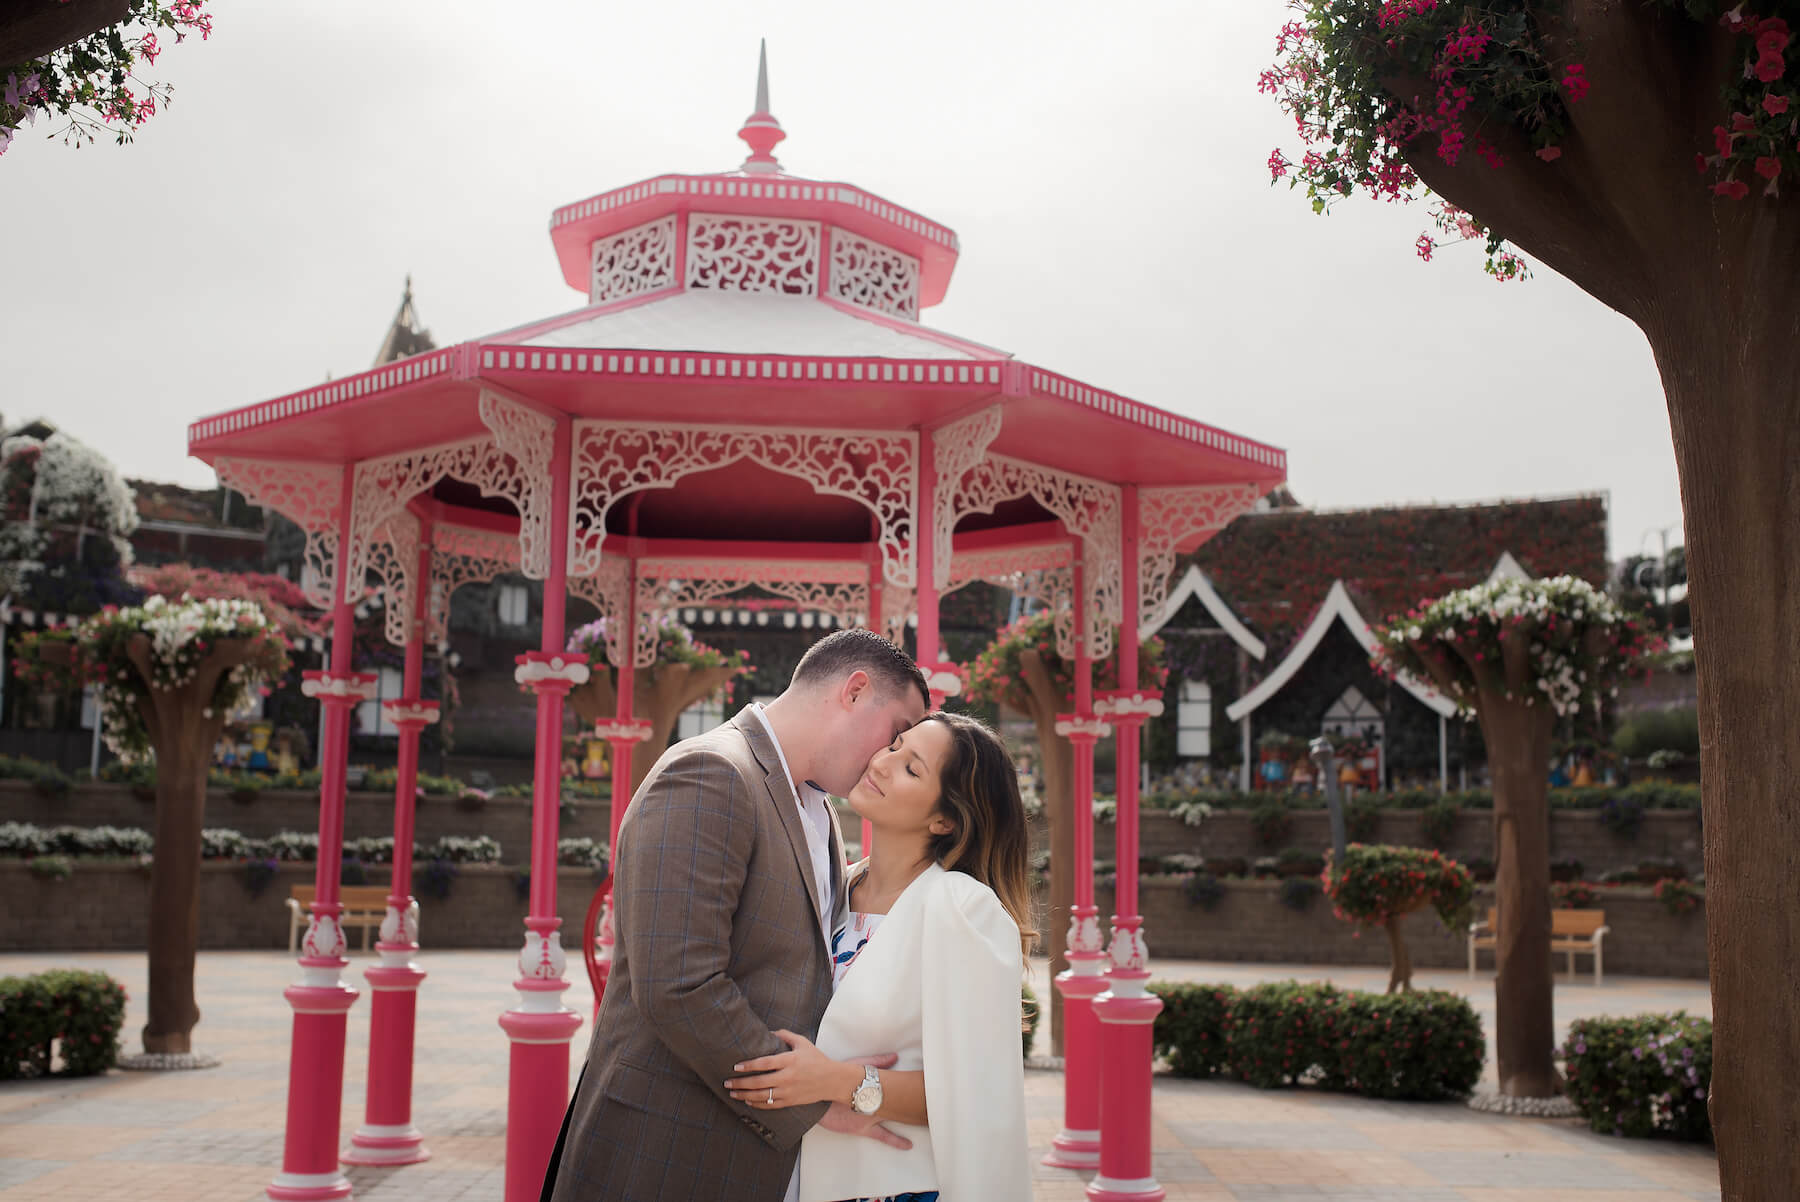 Couple kissing in front of pink gazebo in the Dubai Miracle Garden